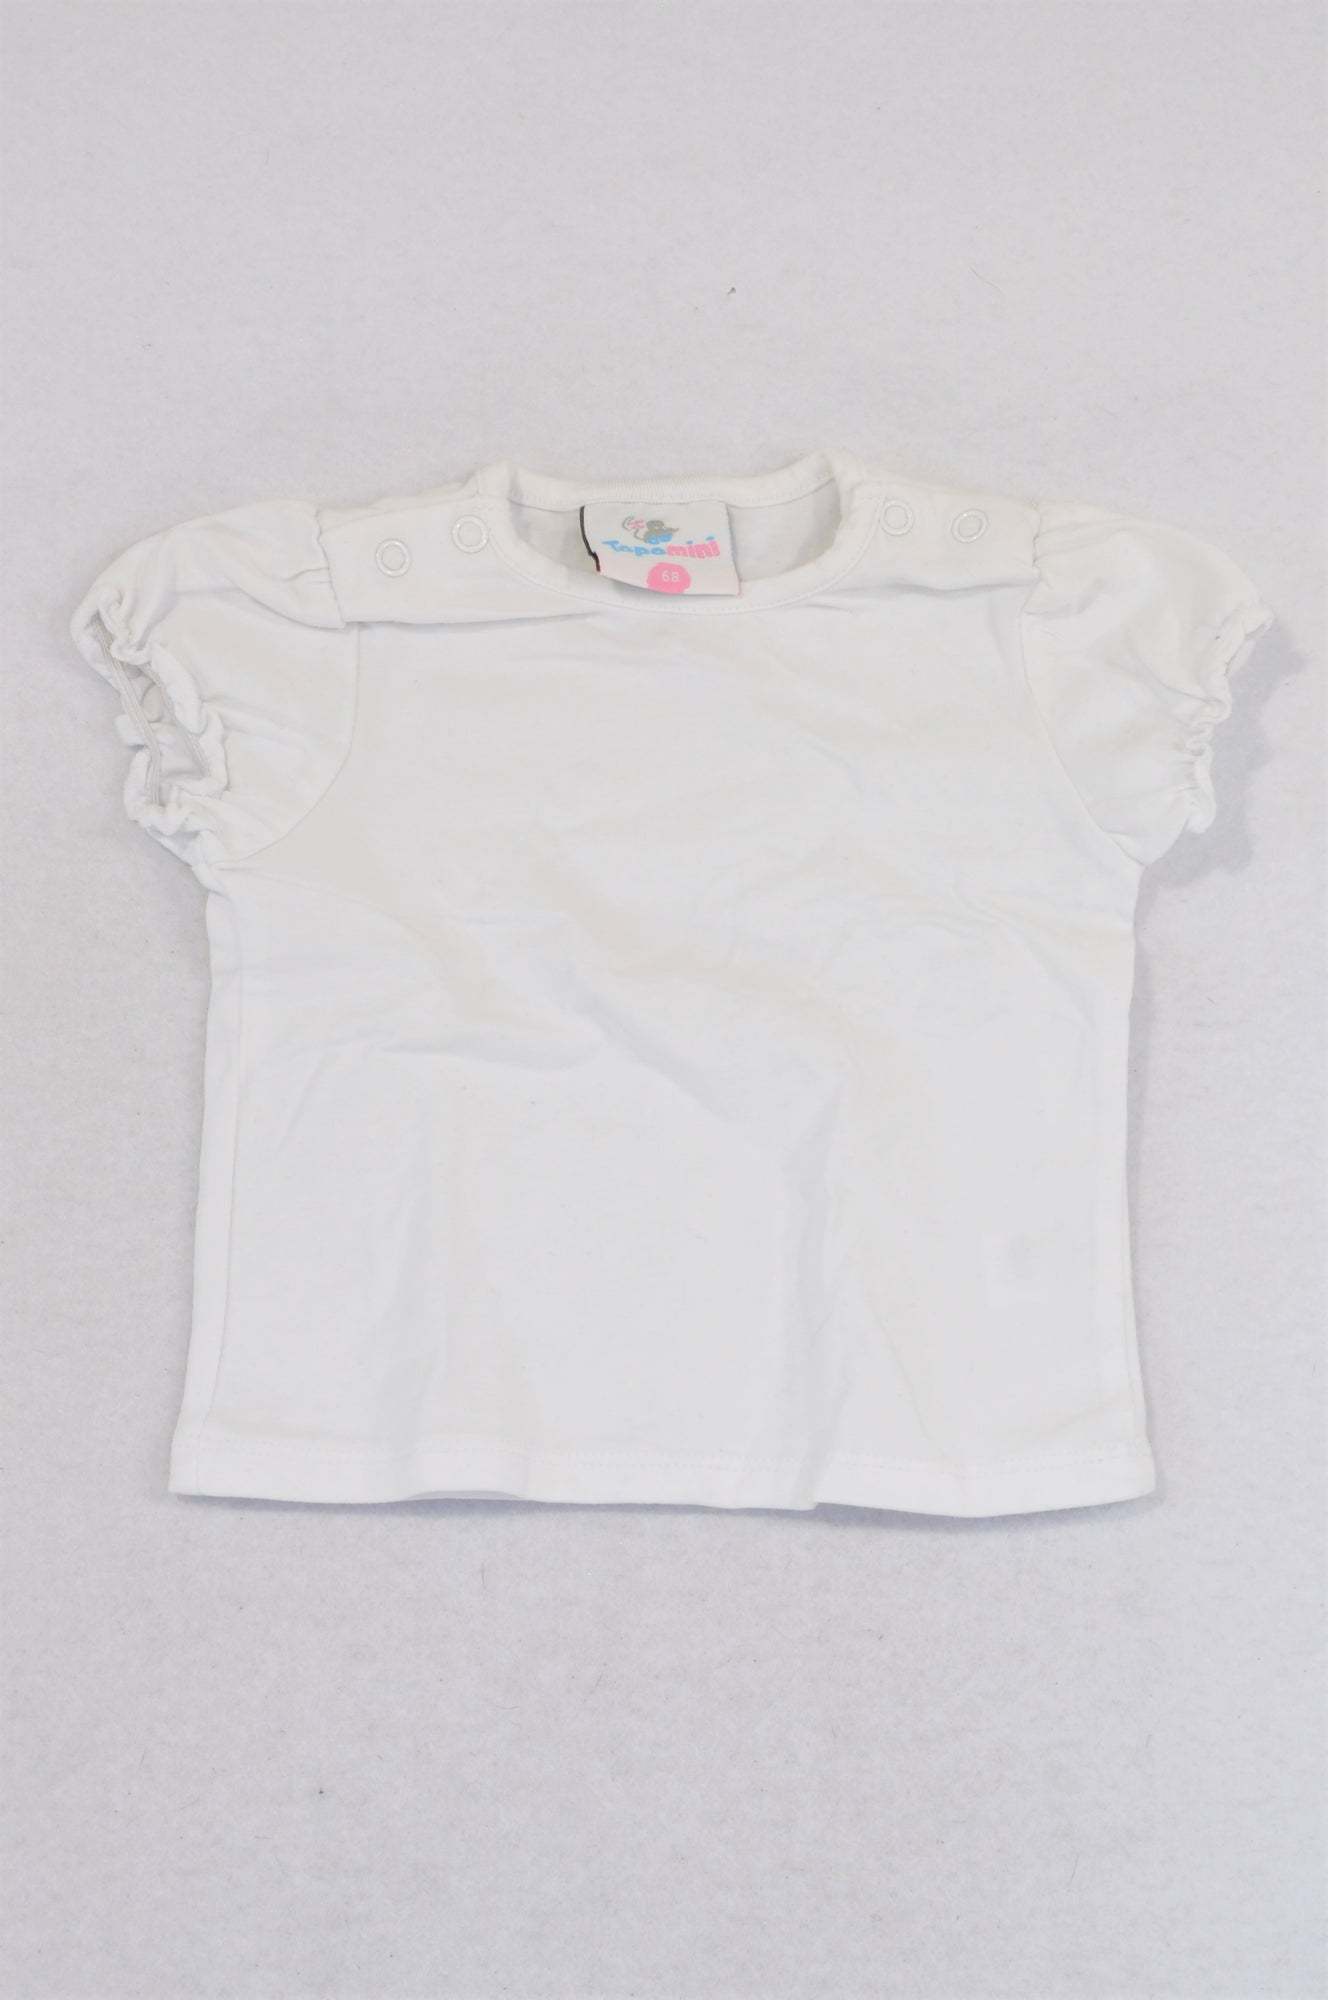 Topomini White Frill Trim Snap T-shirt Girls 6-12 months